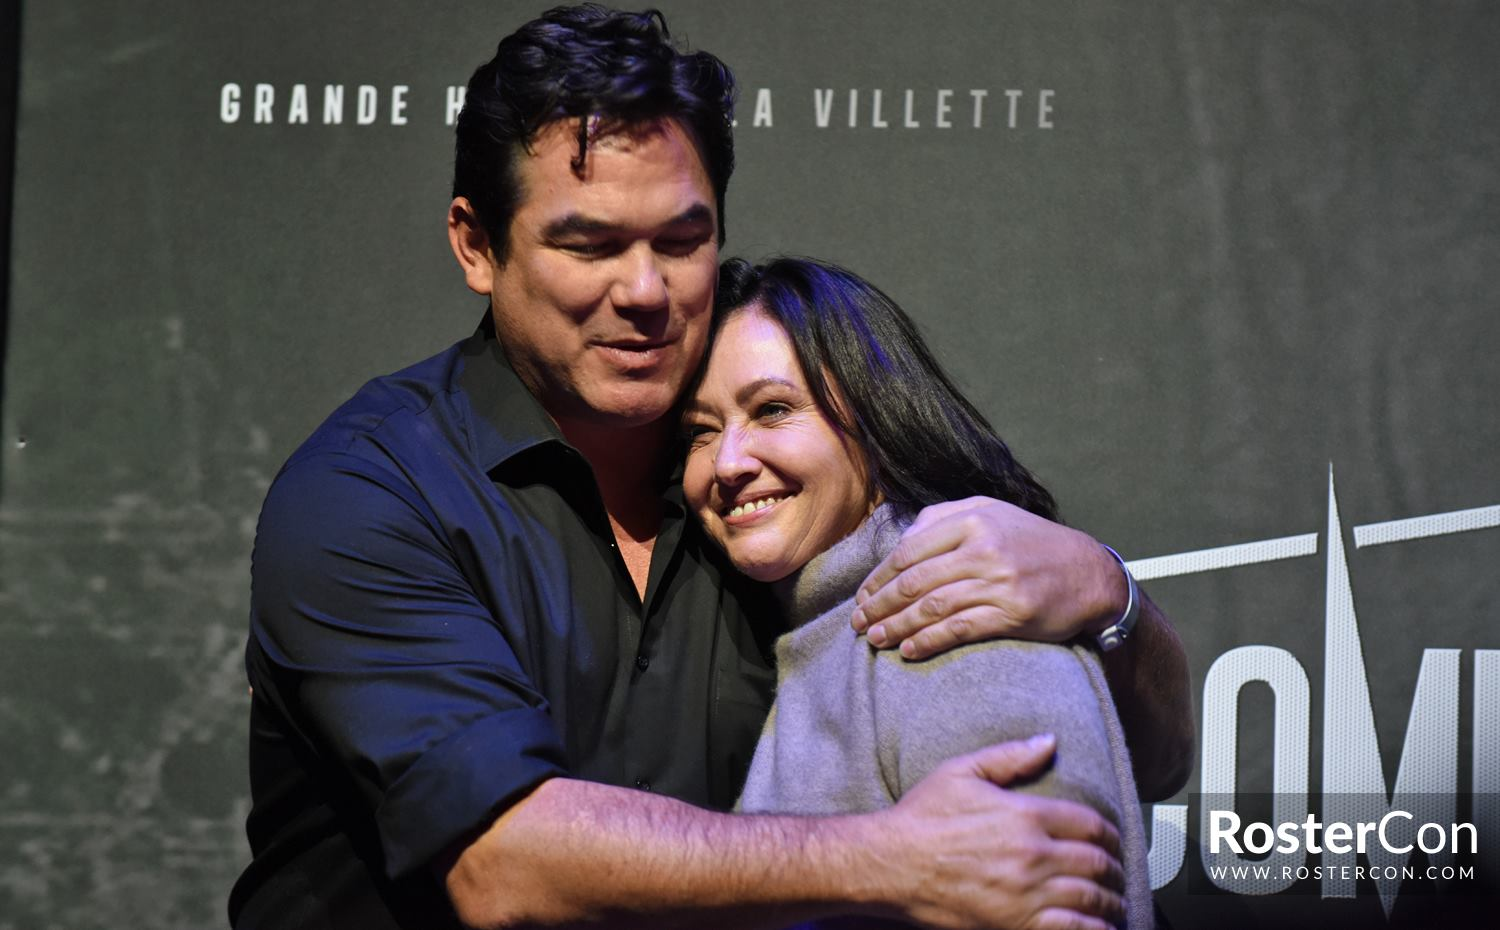 Beverly Hills : Dean Cain and Shannen Doherty reunited at Comic Con Paris 2018